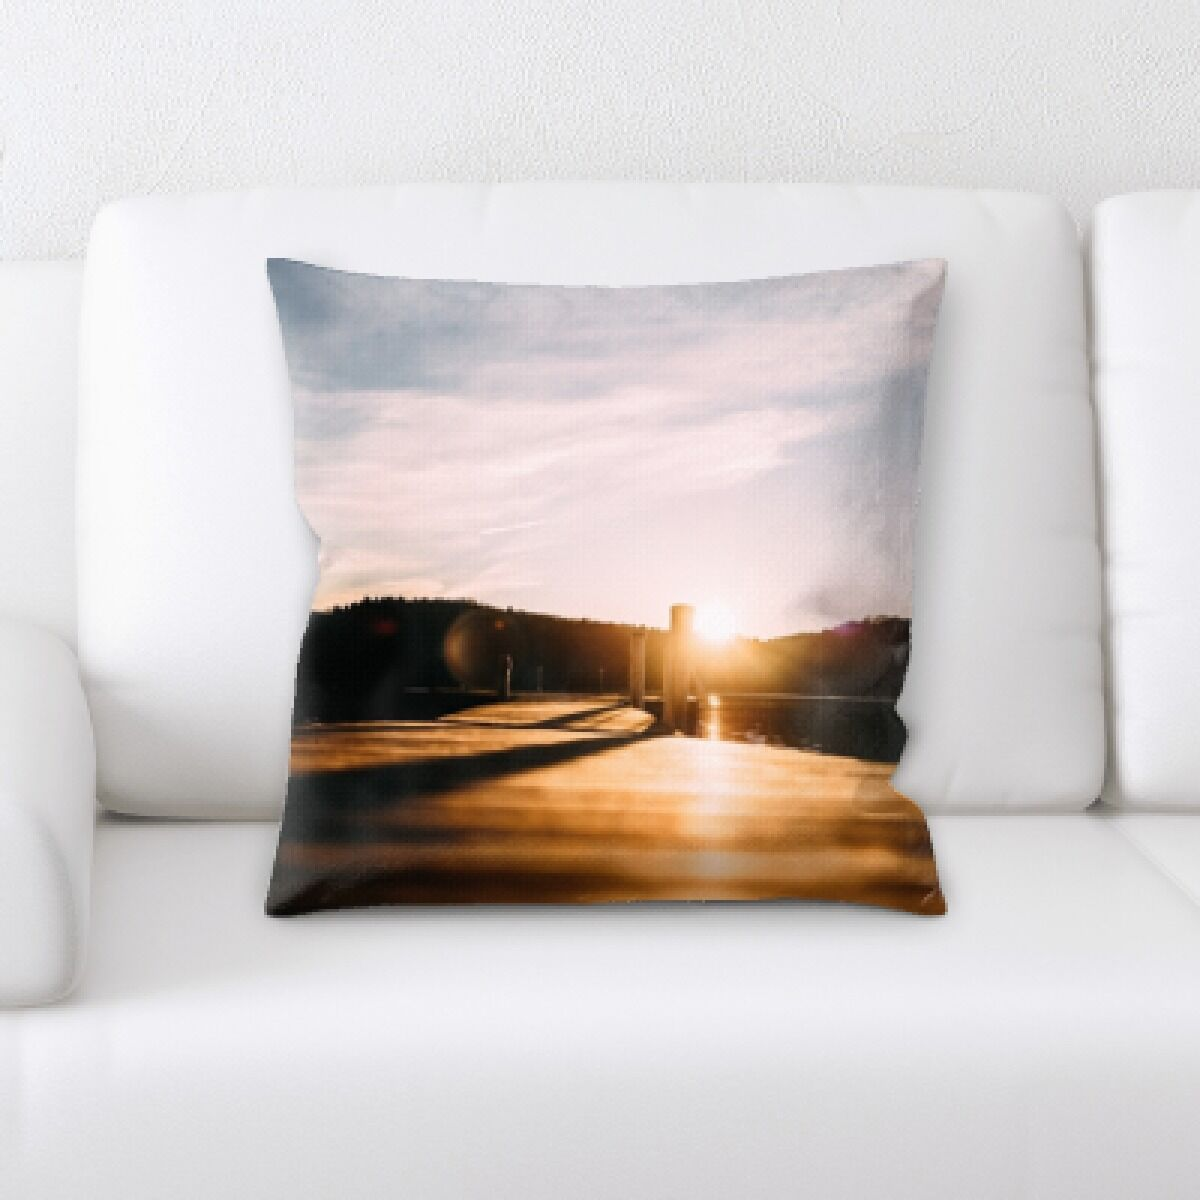 Illuminated (6) Throw Pillow